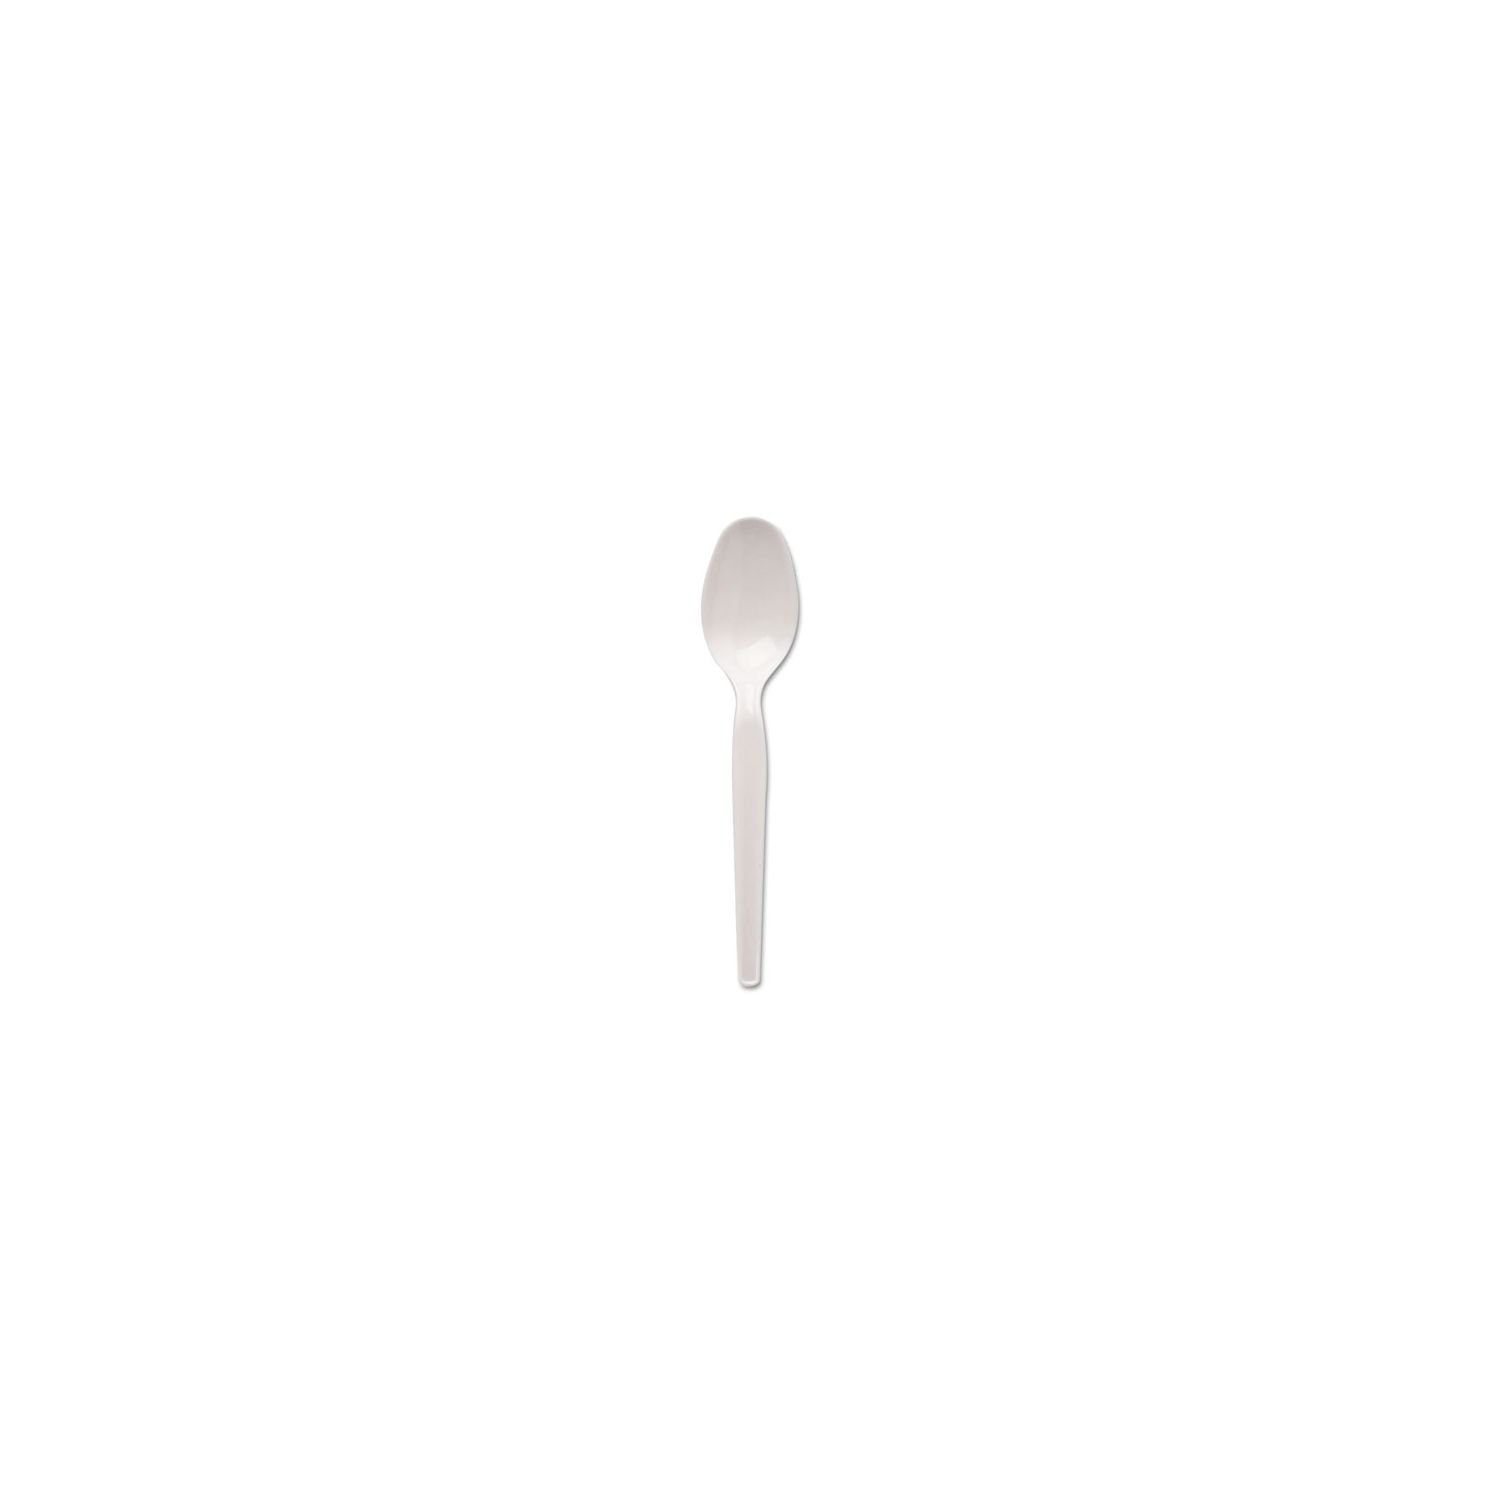 Dixie Heavyweight Plastic Spoons White, 100 ct by Dixie